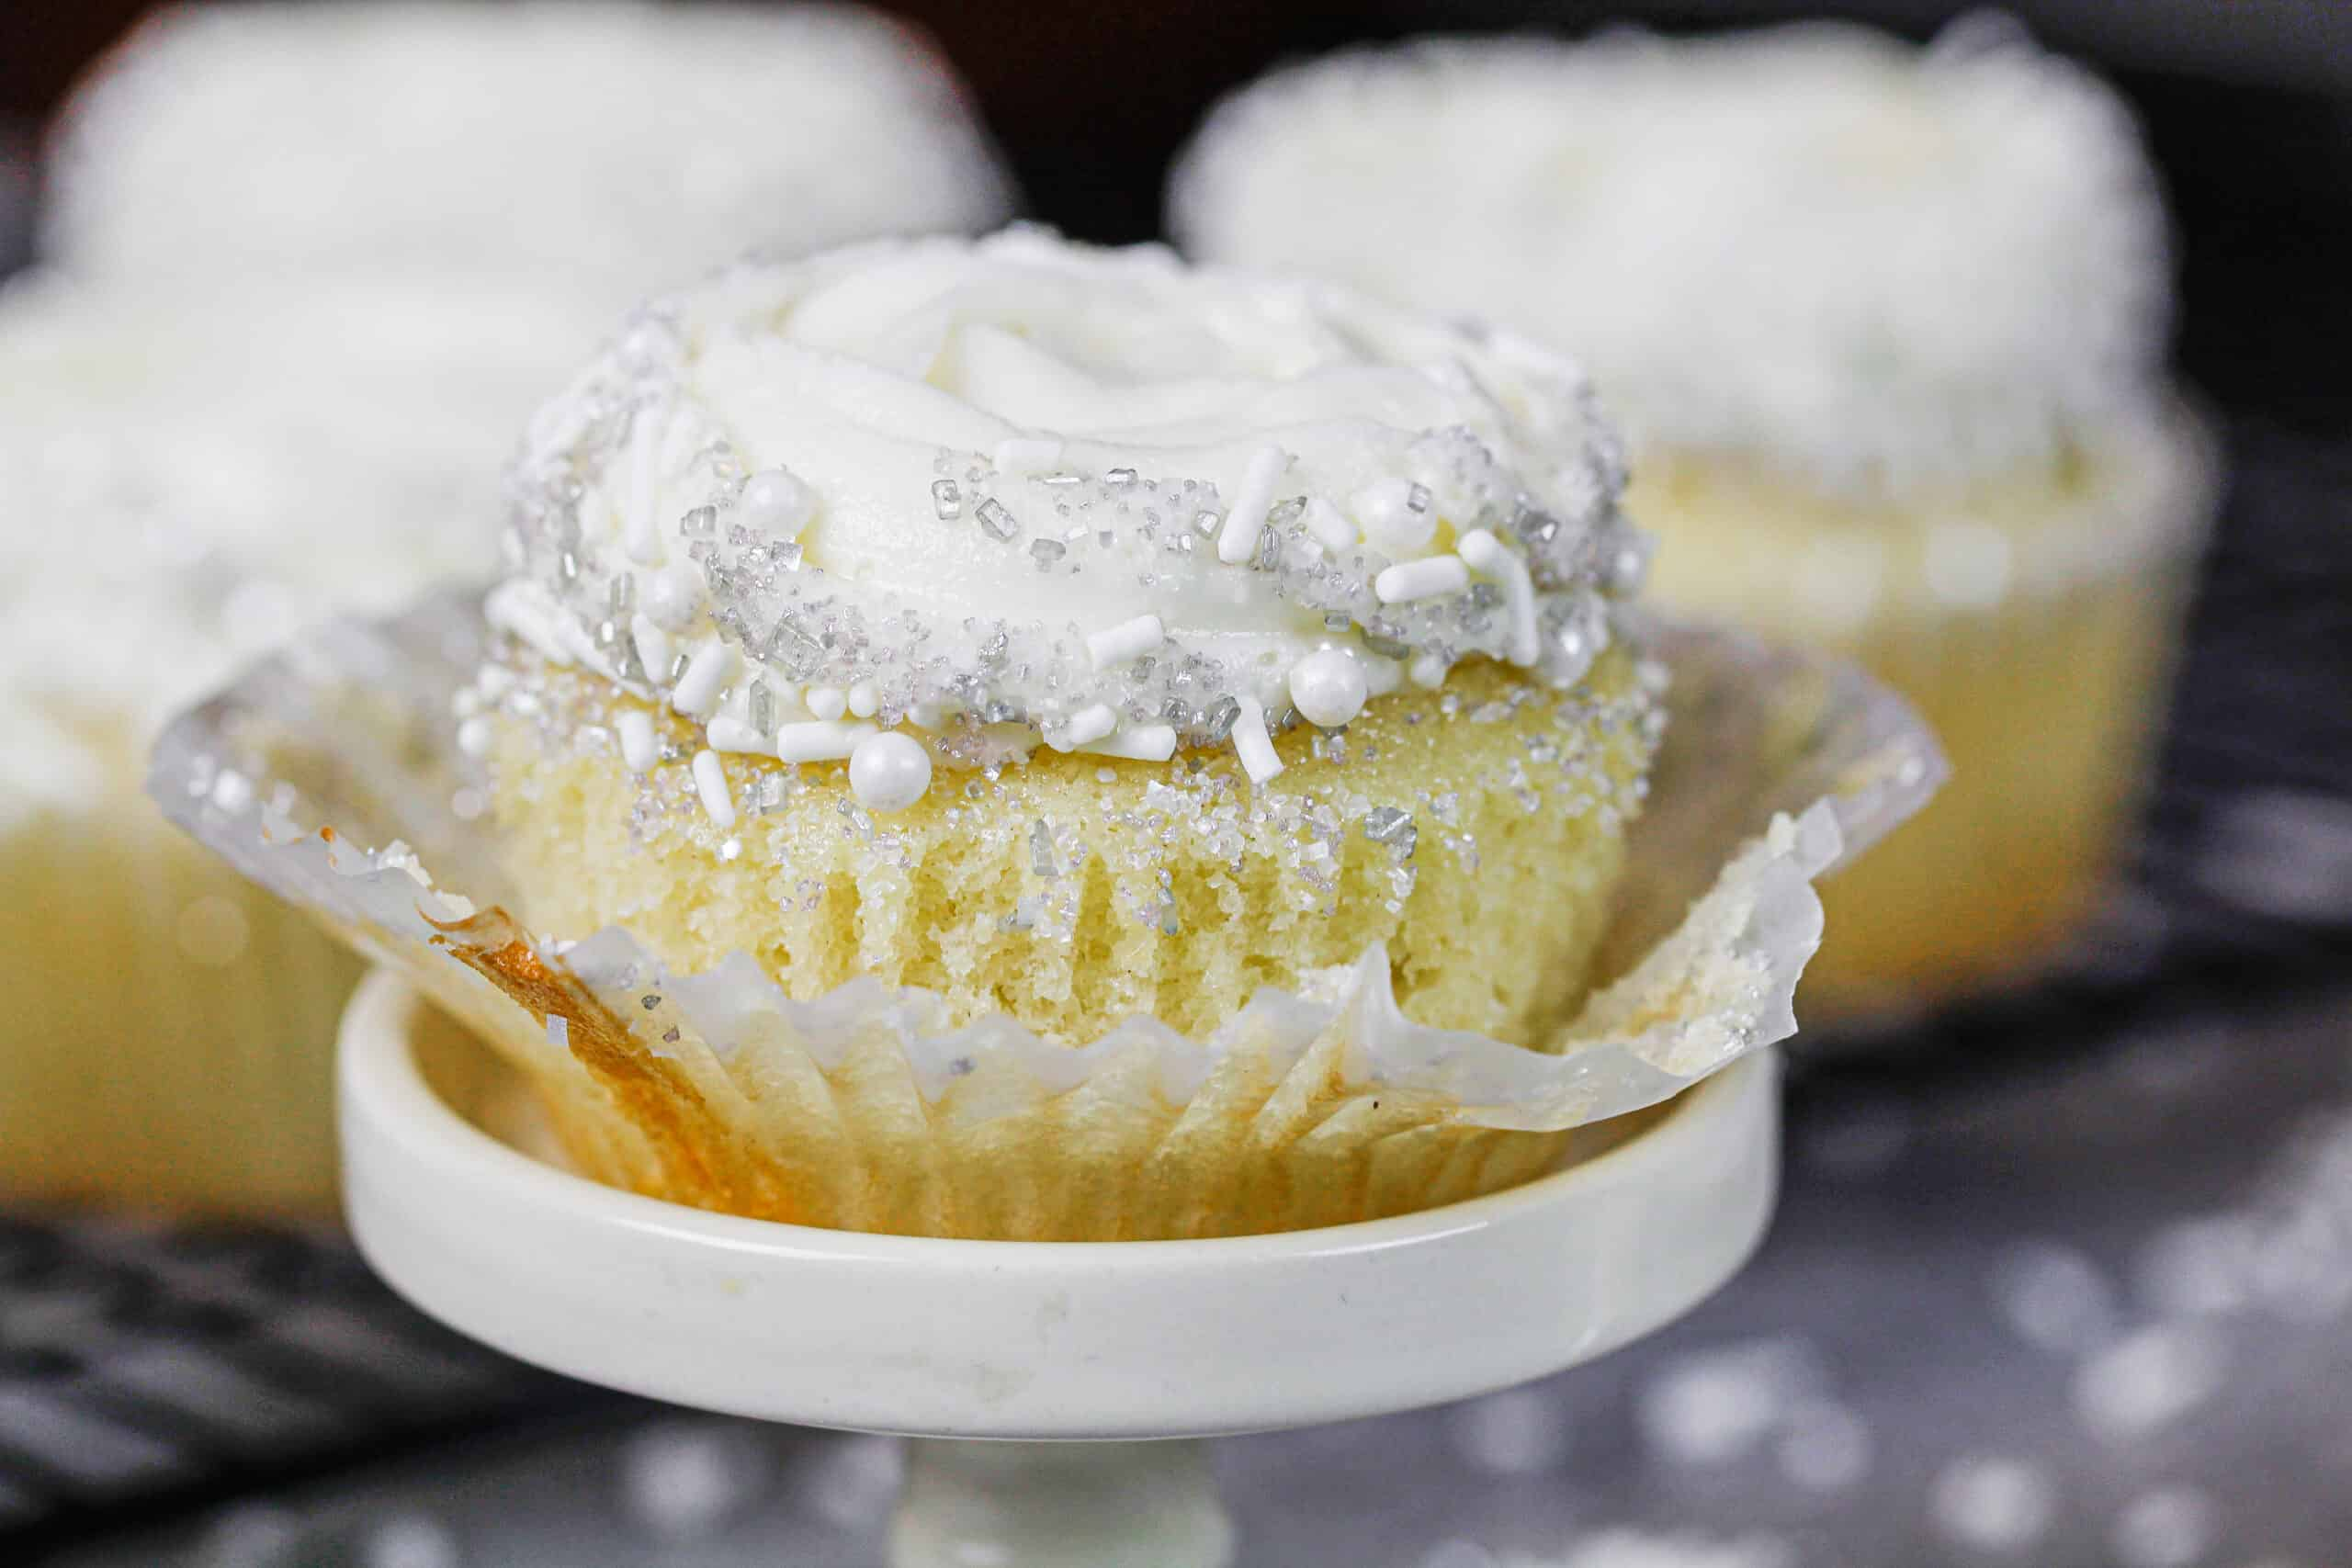 image of pretty almond cupcake unwrapped and ready to be eaten